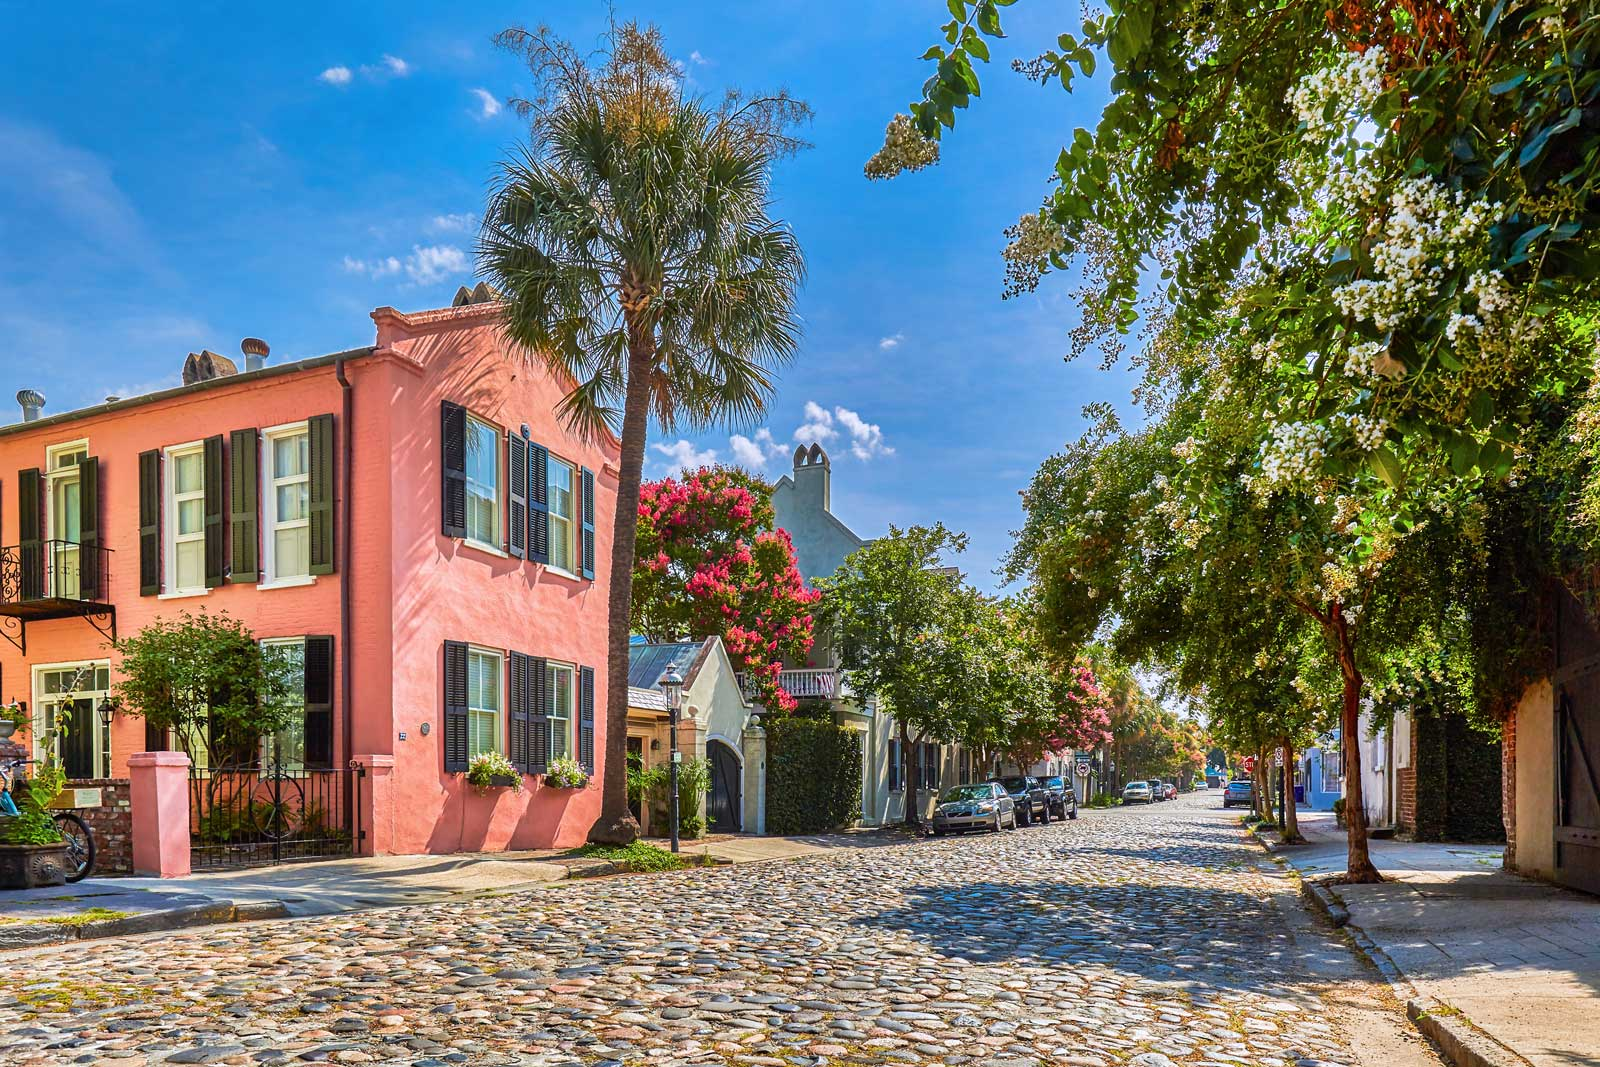 A bright, sunny vew of Charleston's colorful neighborhoods.